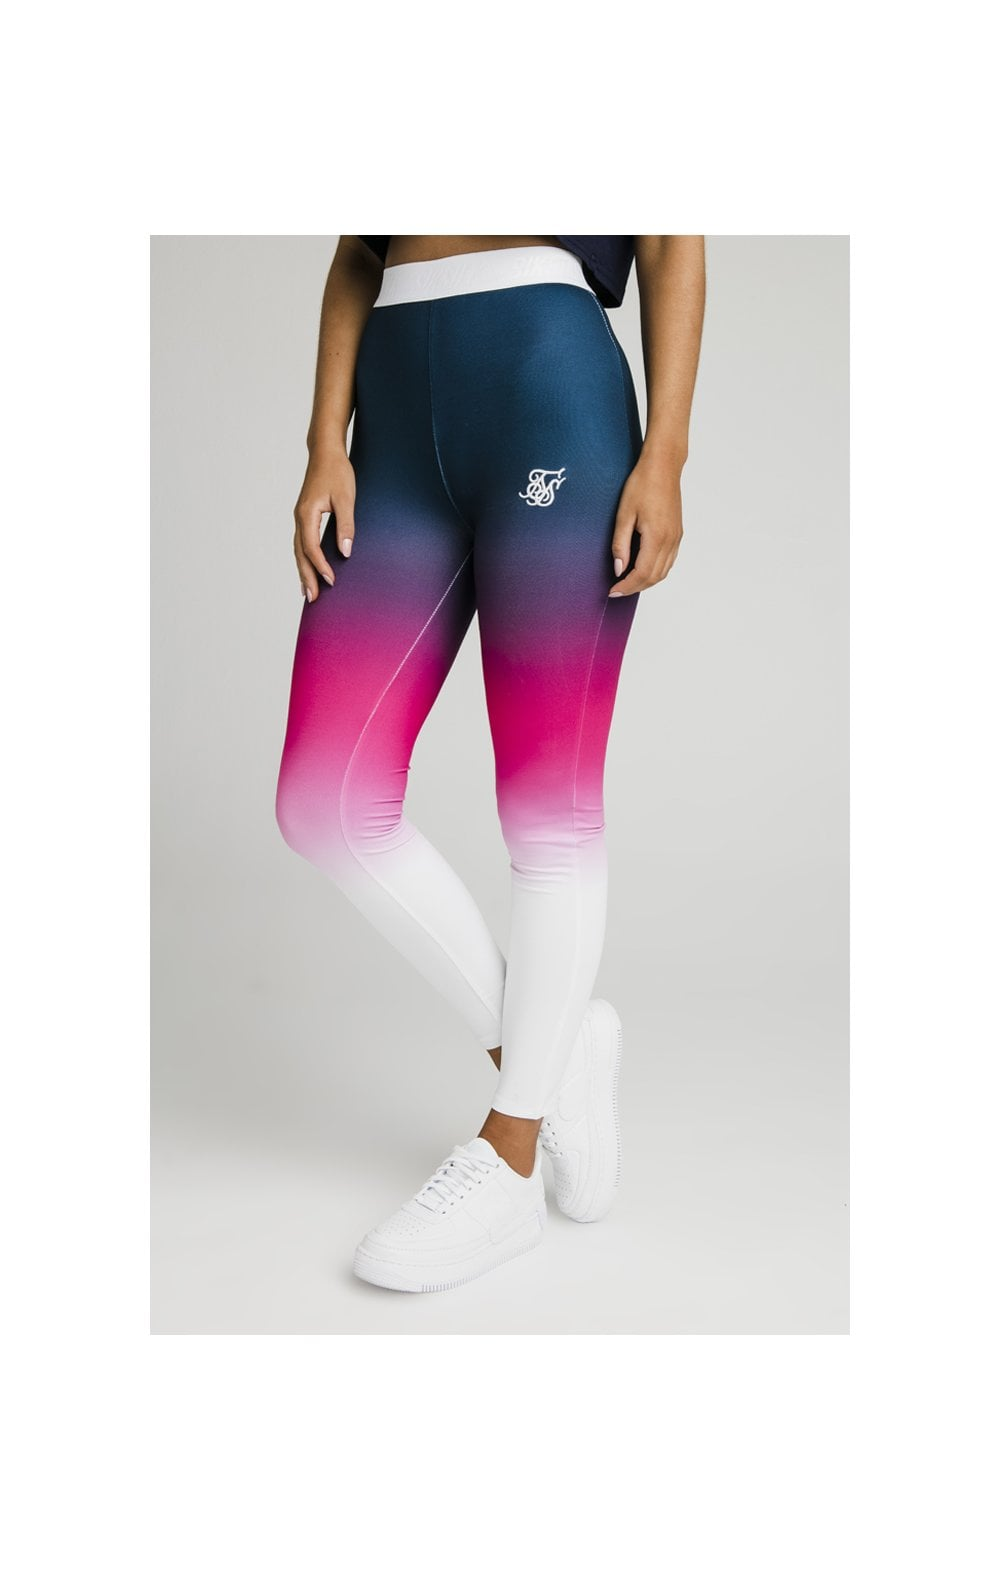 Load image into Gallery viewer, SikSilk Fade Tape Leggings - Navy, Pink & White